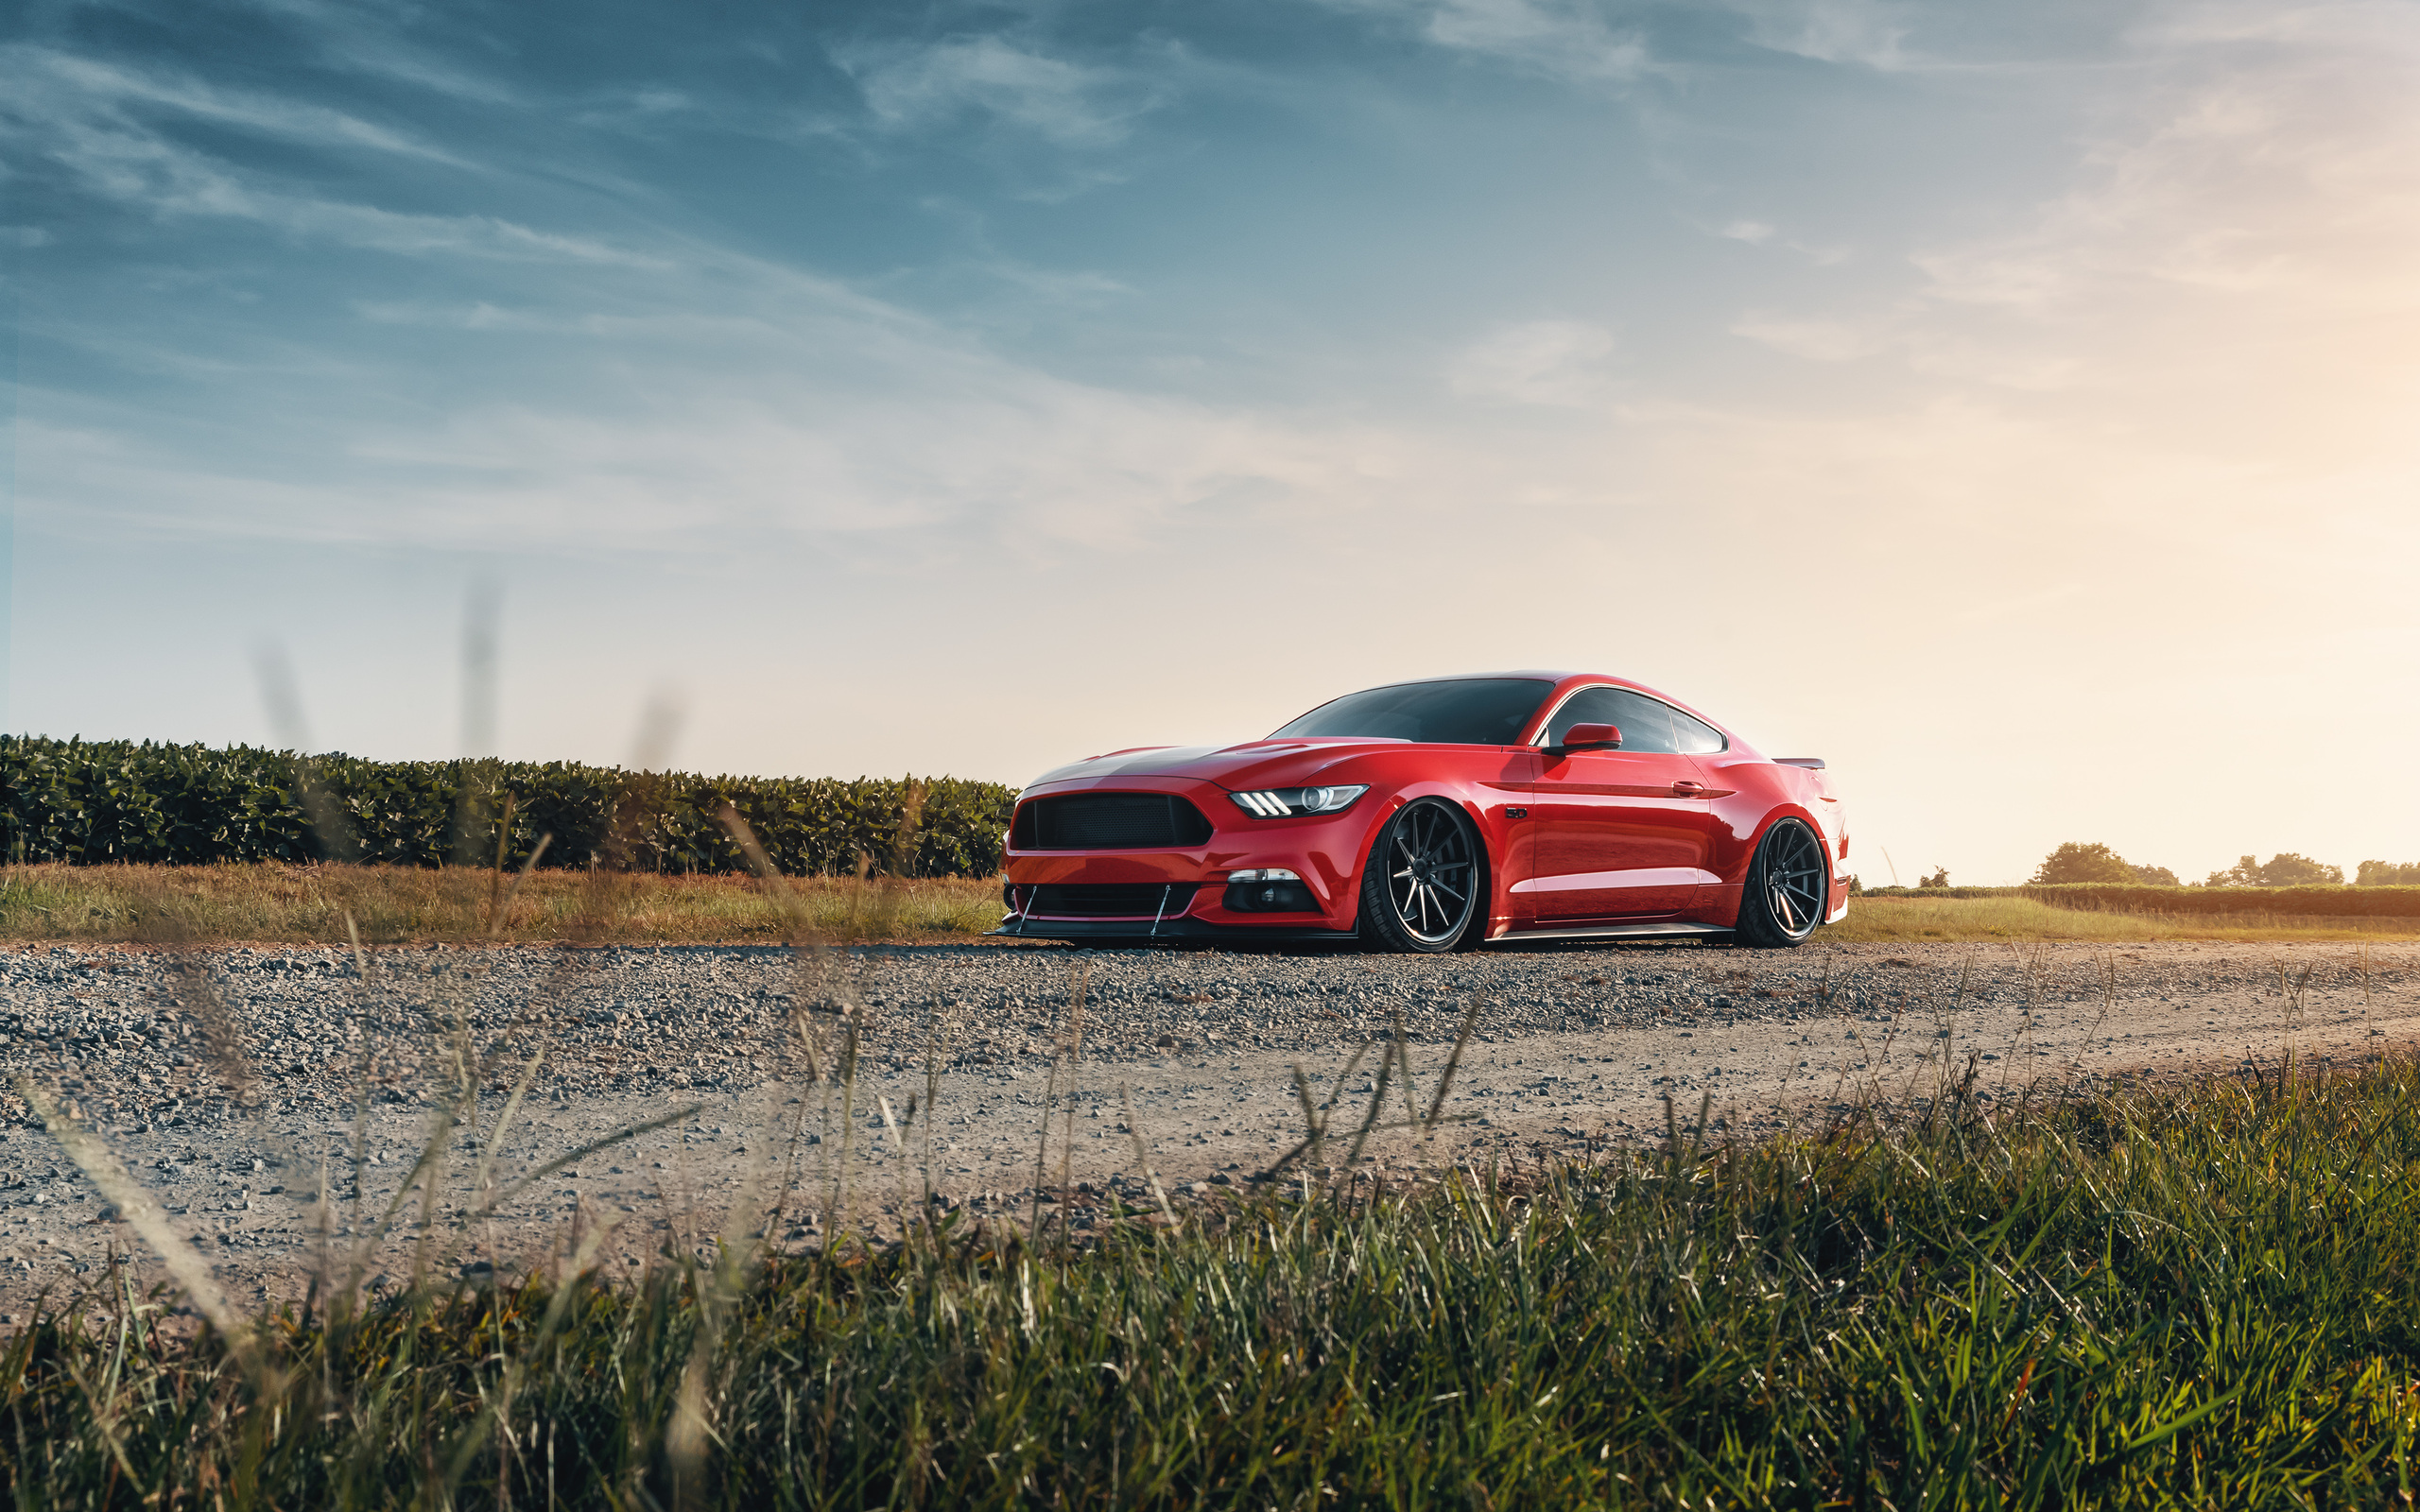 2560x1600 2021 Red Ford Mustang 4k 2560x1600 Resolution HD ...